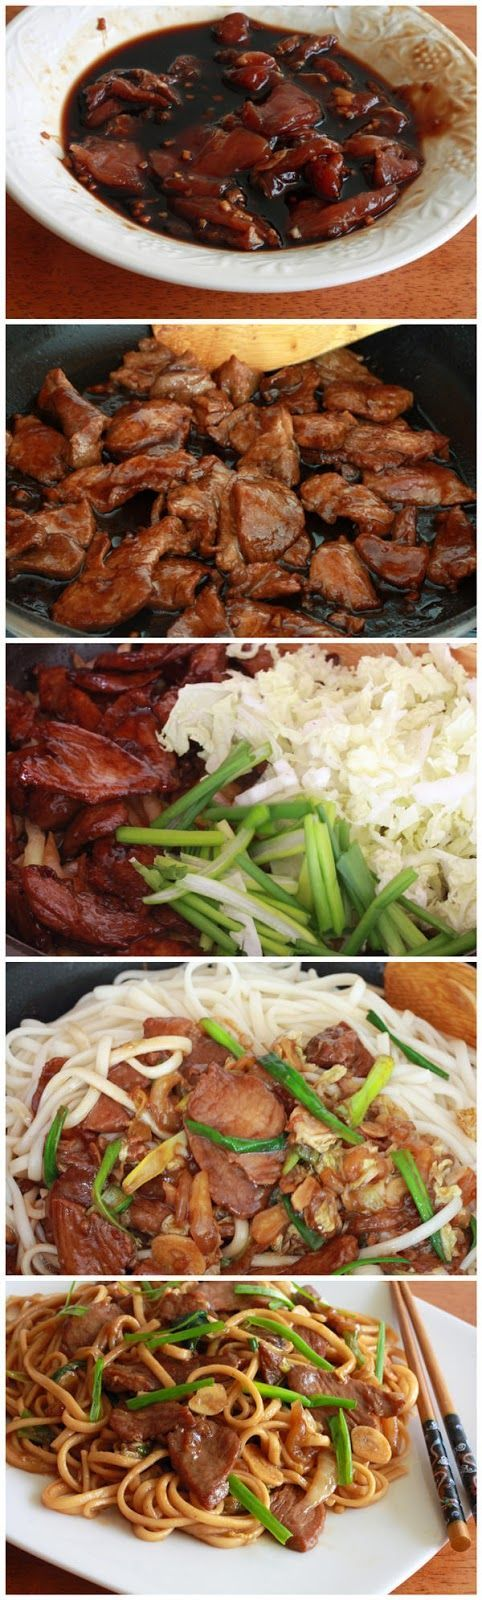 Shanghai Noodles...simple and common ingredients. Easy to make!